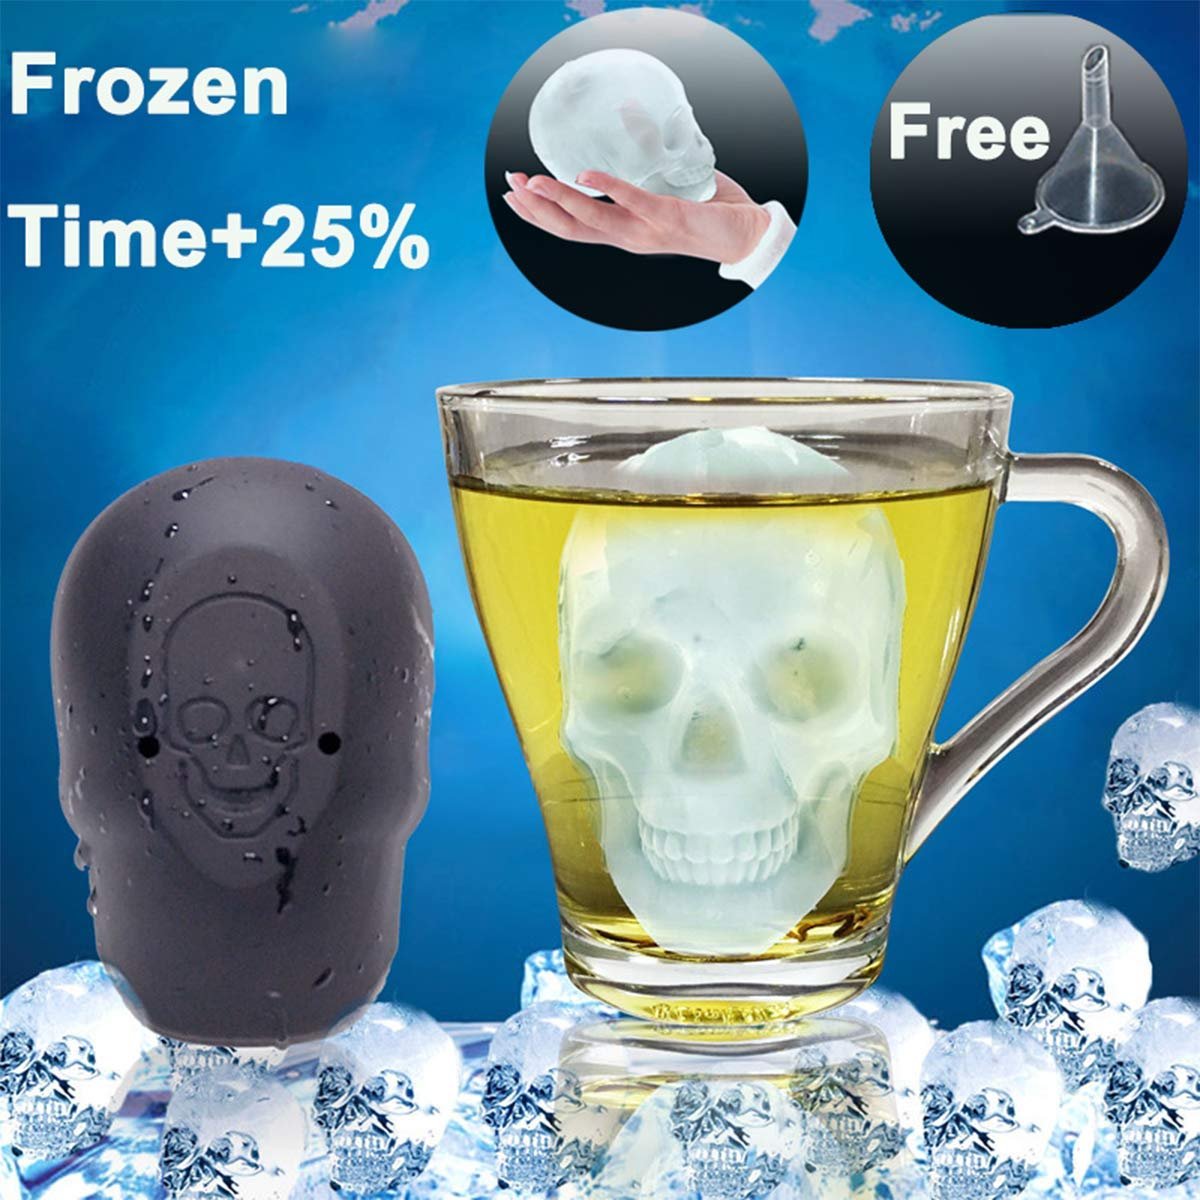 Halloween 3D Skull Flexible Silicone Ice Cube Mold Tray Make 3'' Giant Skull for Whiskey Drinks Cooler Bigger Skull Chocolate Cake Mold for Party Bar Large Ice Cube Maker Easy Fill Release Free Funnel